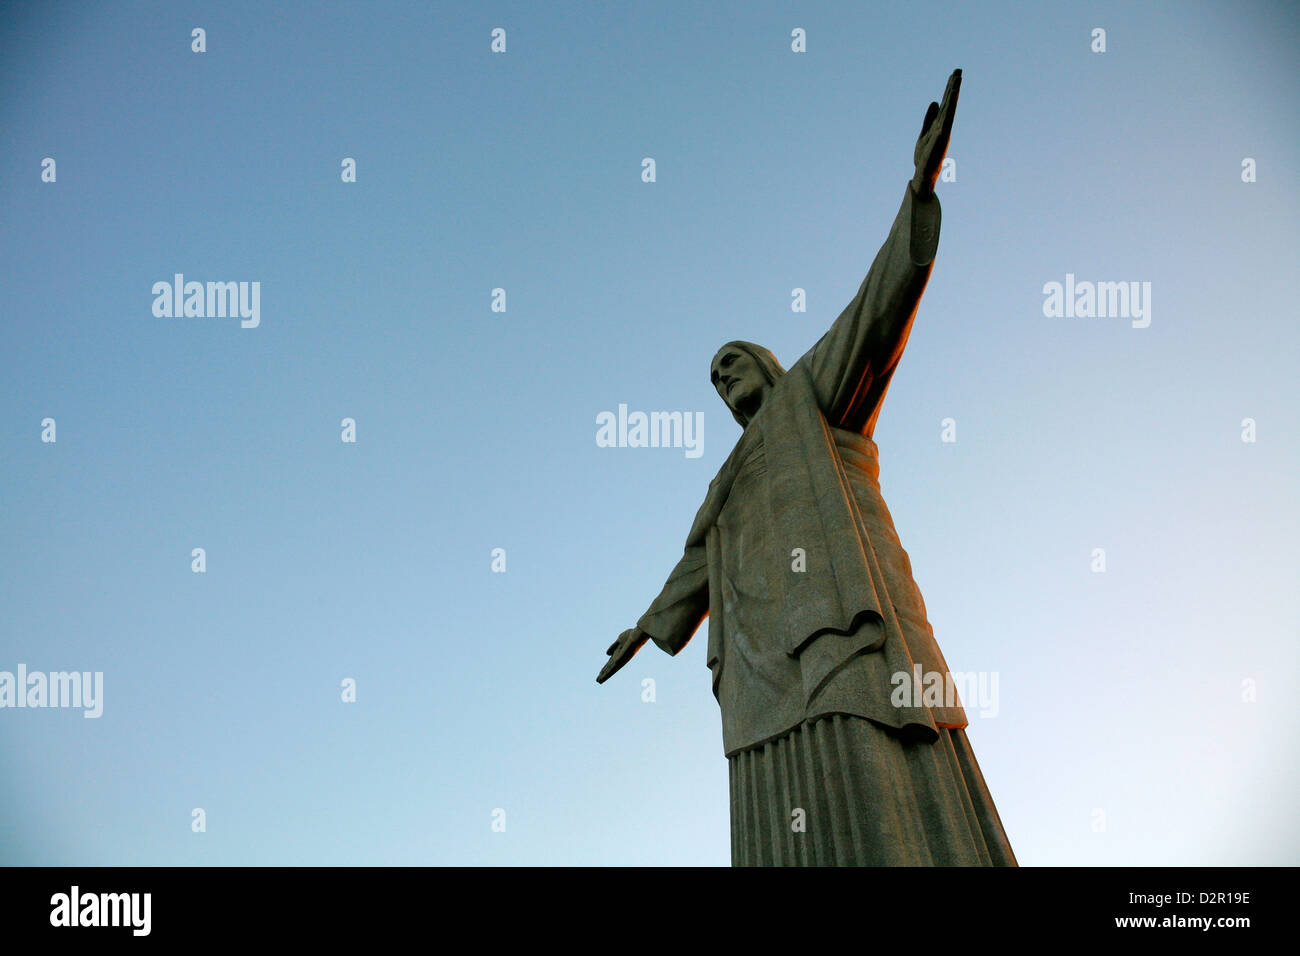 The statue of Christ the Redeemer on top of the Corcovado mountain, Rio de Janeiro, Brazil, South America Stock Photo